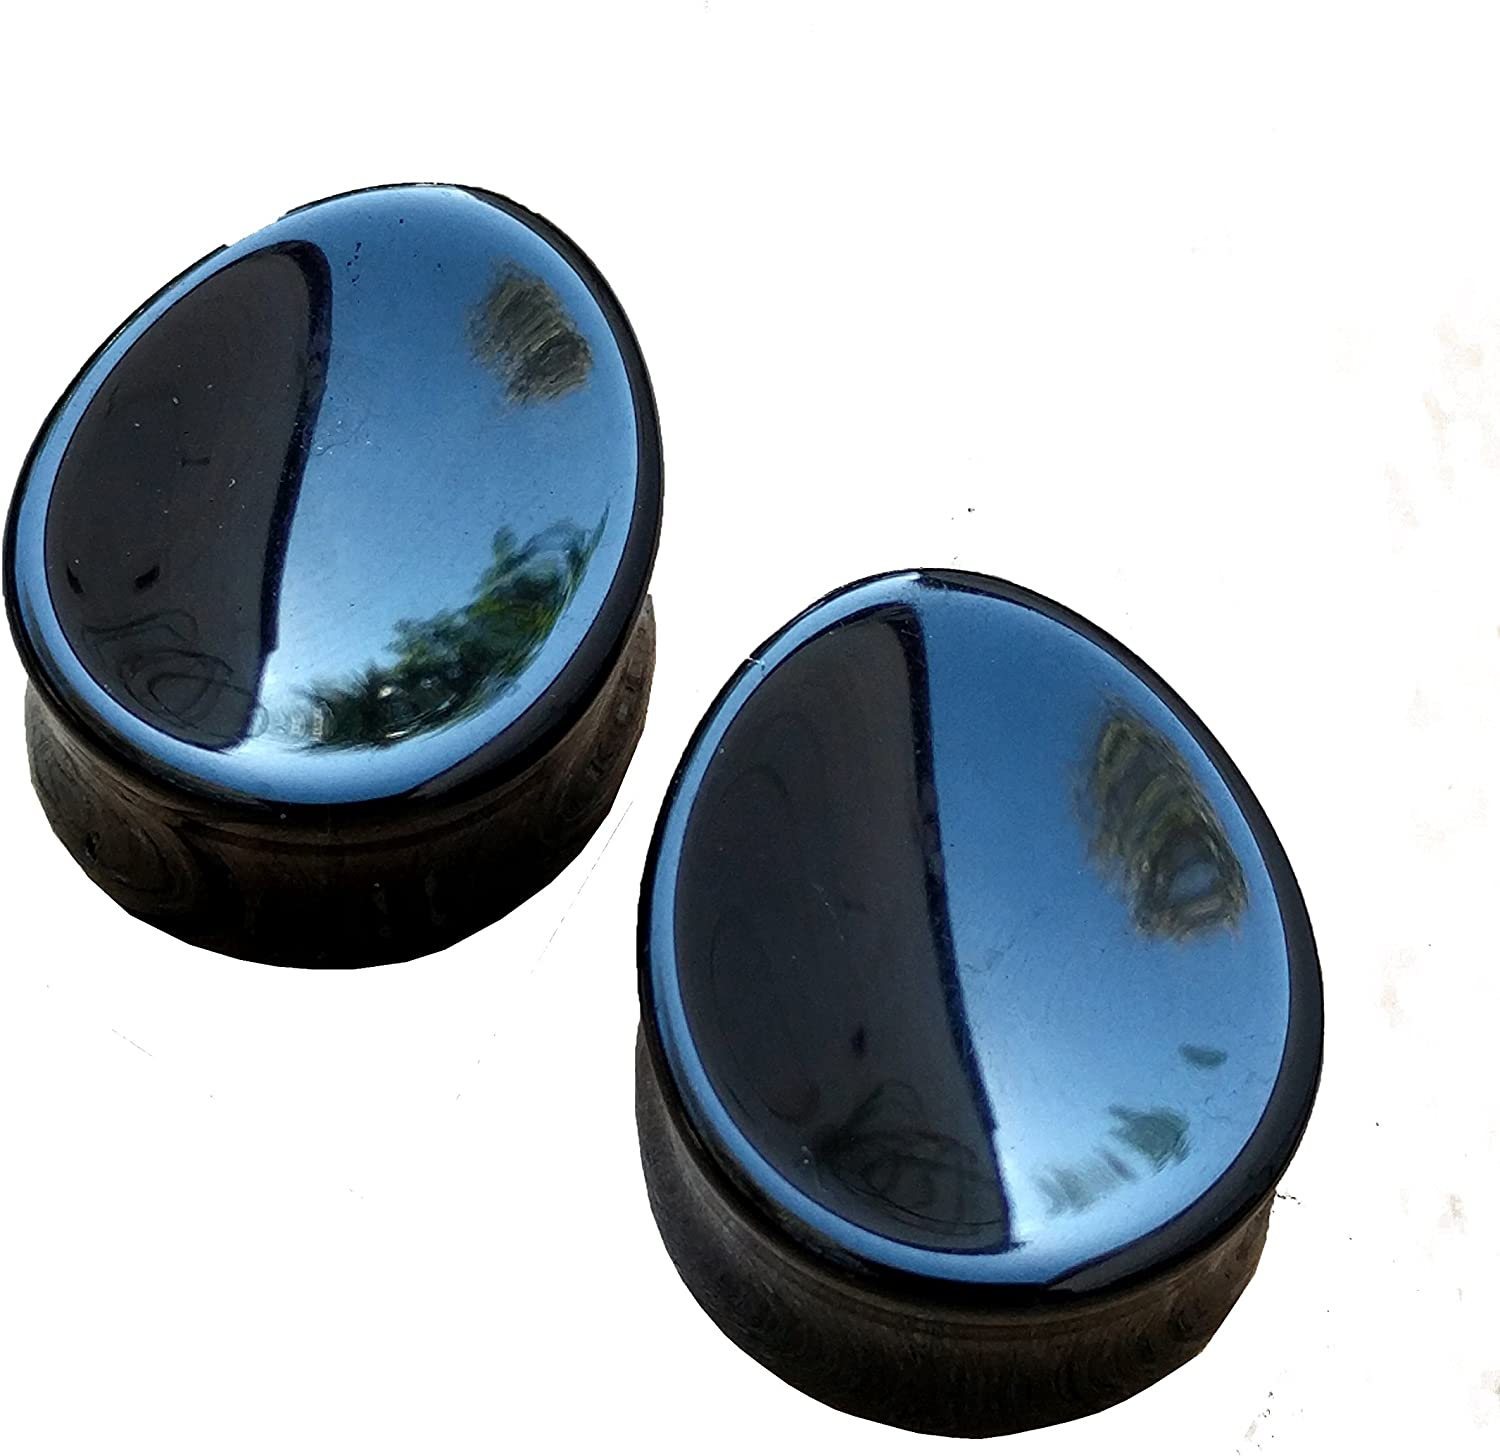 New! Black Obsidian Stone Teardrop Plugs Sold In Pairs 2G - 1 /& 12 Inch Double Flare